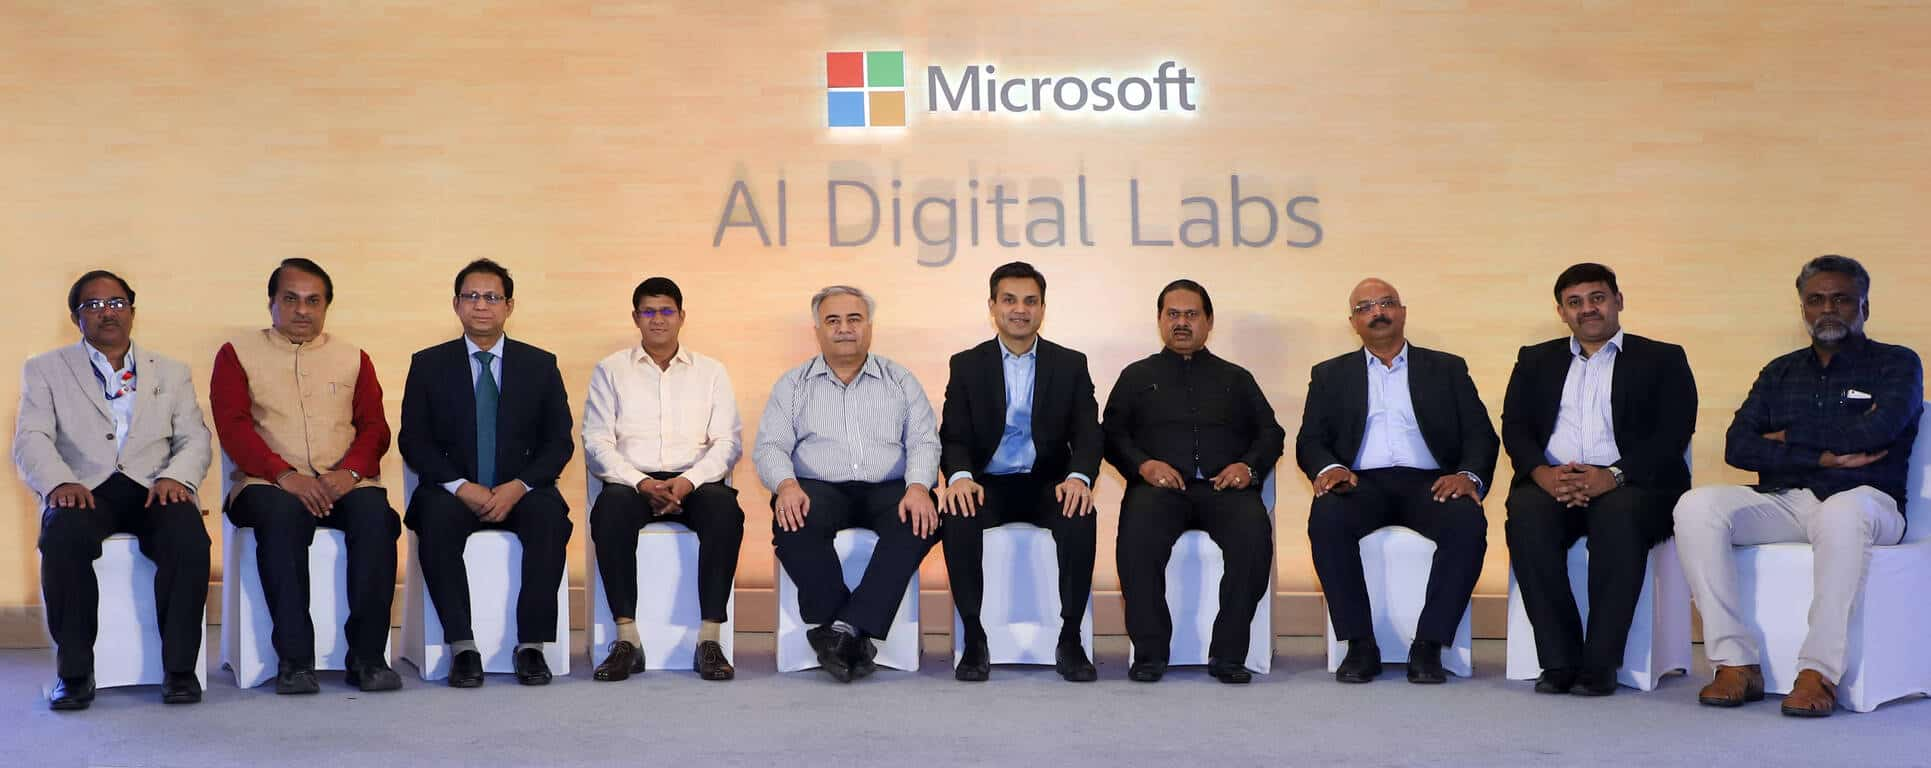 AI Digital Labs - Microsoft